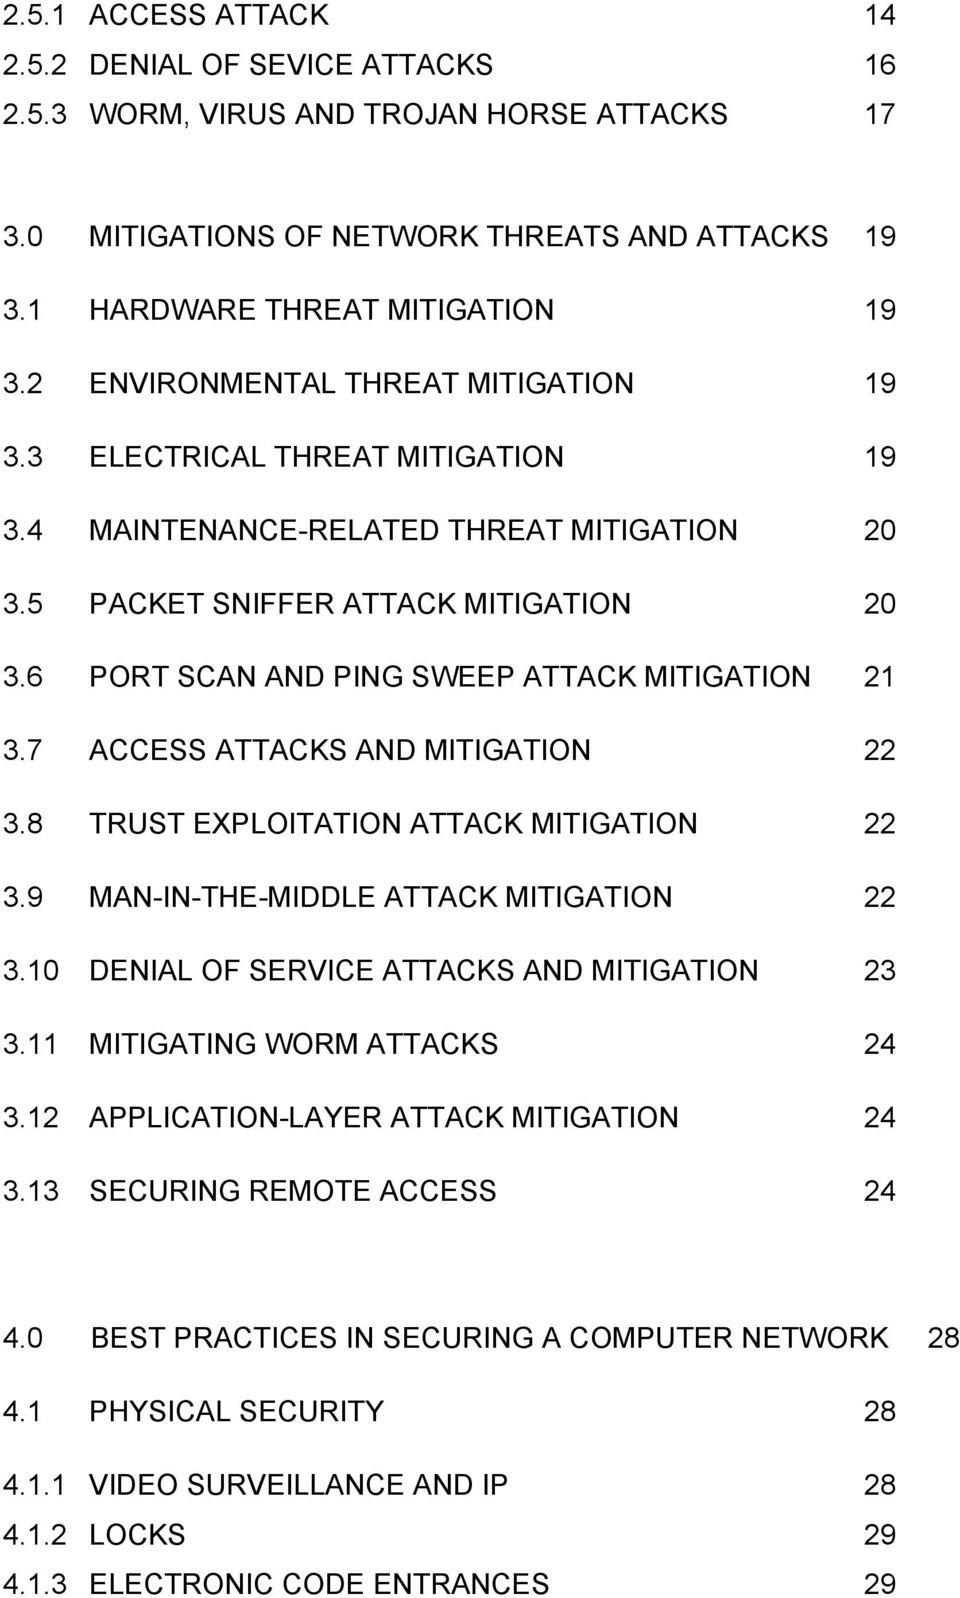 6 PORT SCAN AND PING SWEEP ATTACK MITIGATION 21 3.7 ACCESS ATTACKS AND MITIGATION 22 3.8 TRUST EXPLOITATION ATTACK MITIGATION 22 3.9 MAN-IN-THE-MIDDLE ATTACK MITIGATION 22 3.